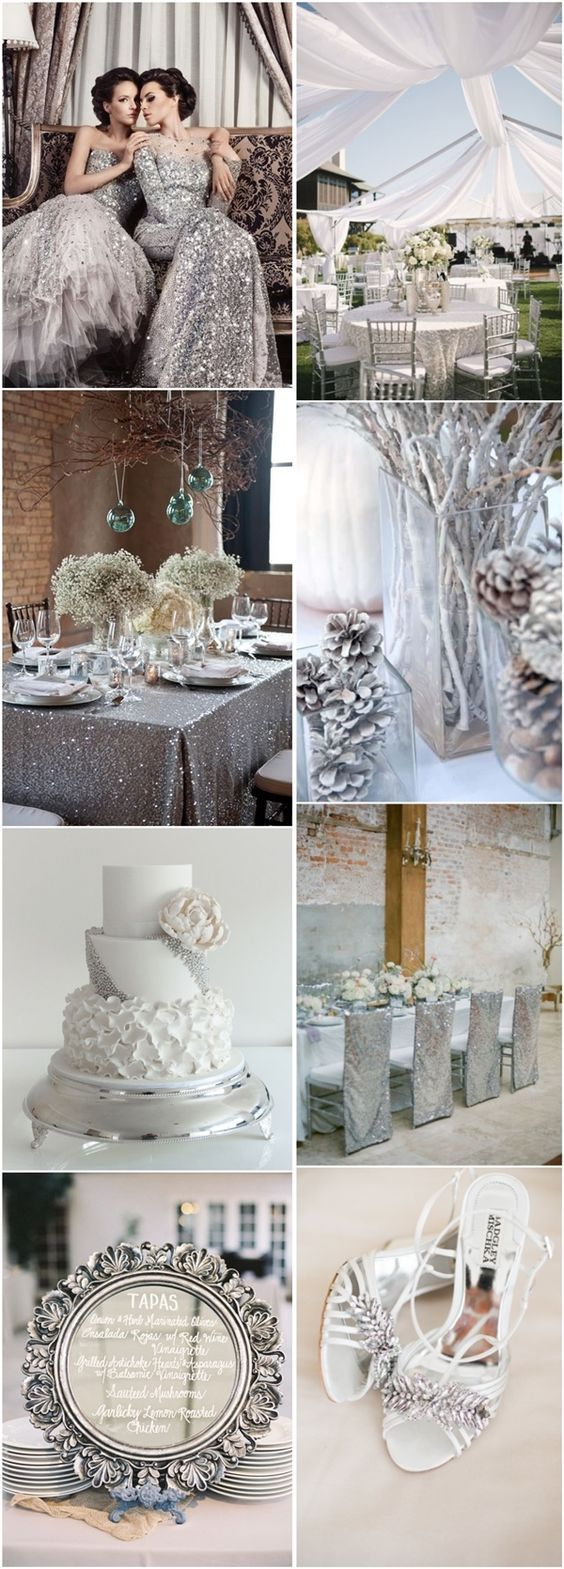 b7dfba59c8a6fda8120bb4db7d417986 Trend Forecasting: Top 15 Expected Wedding Color Ideas for 2021